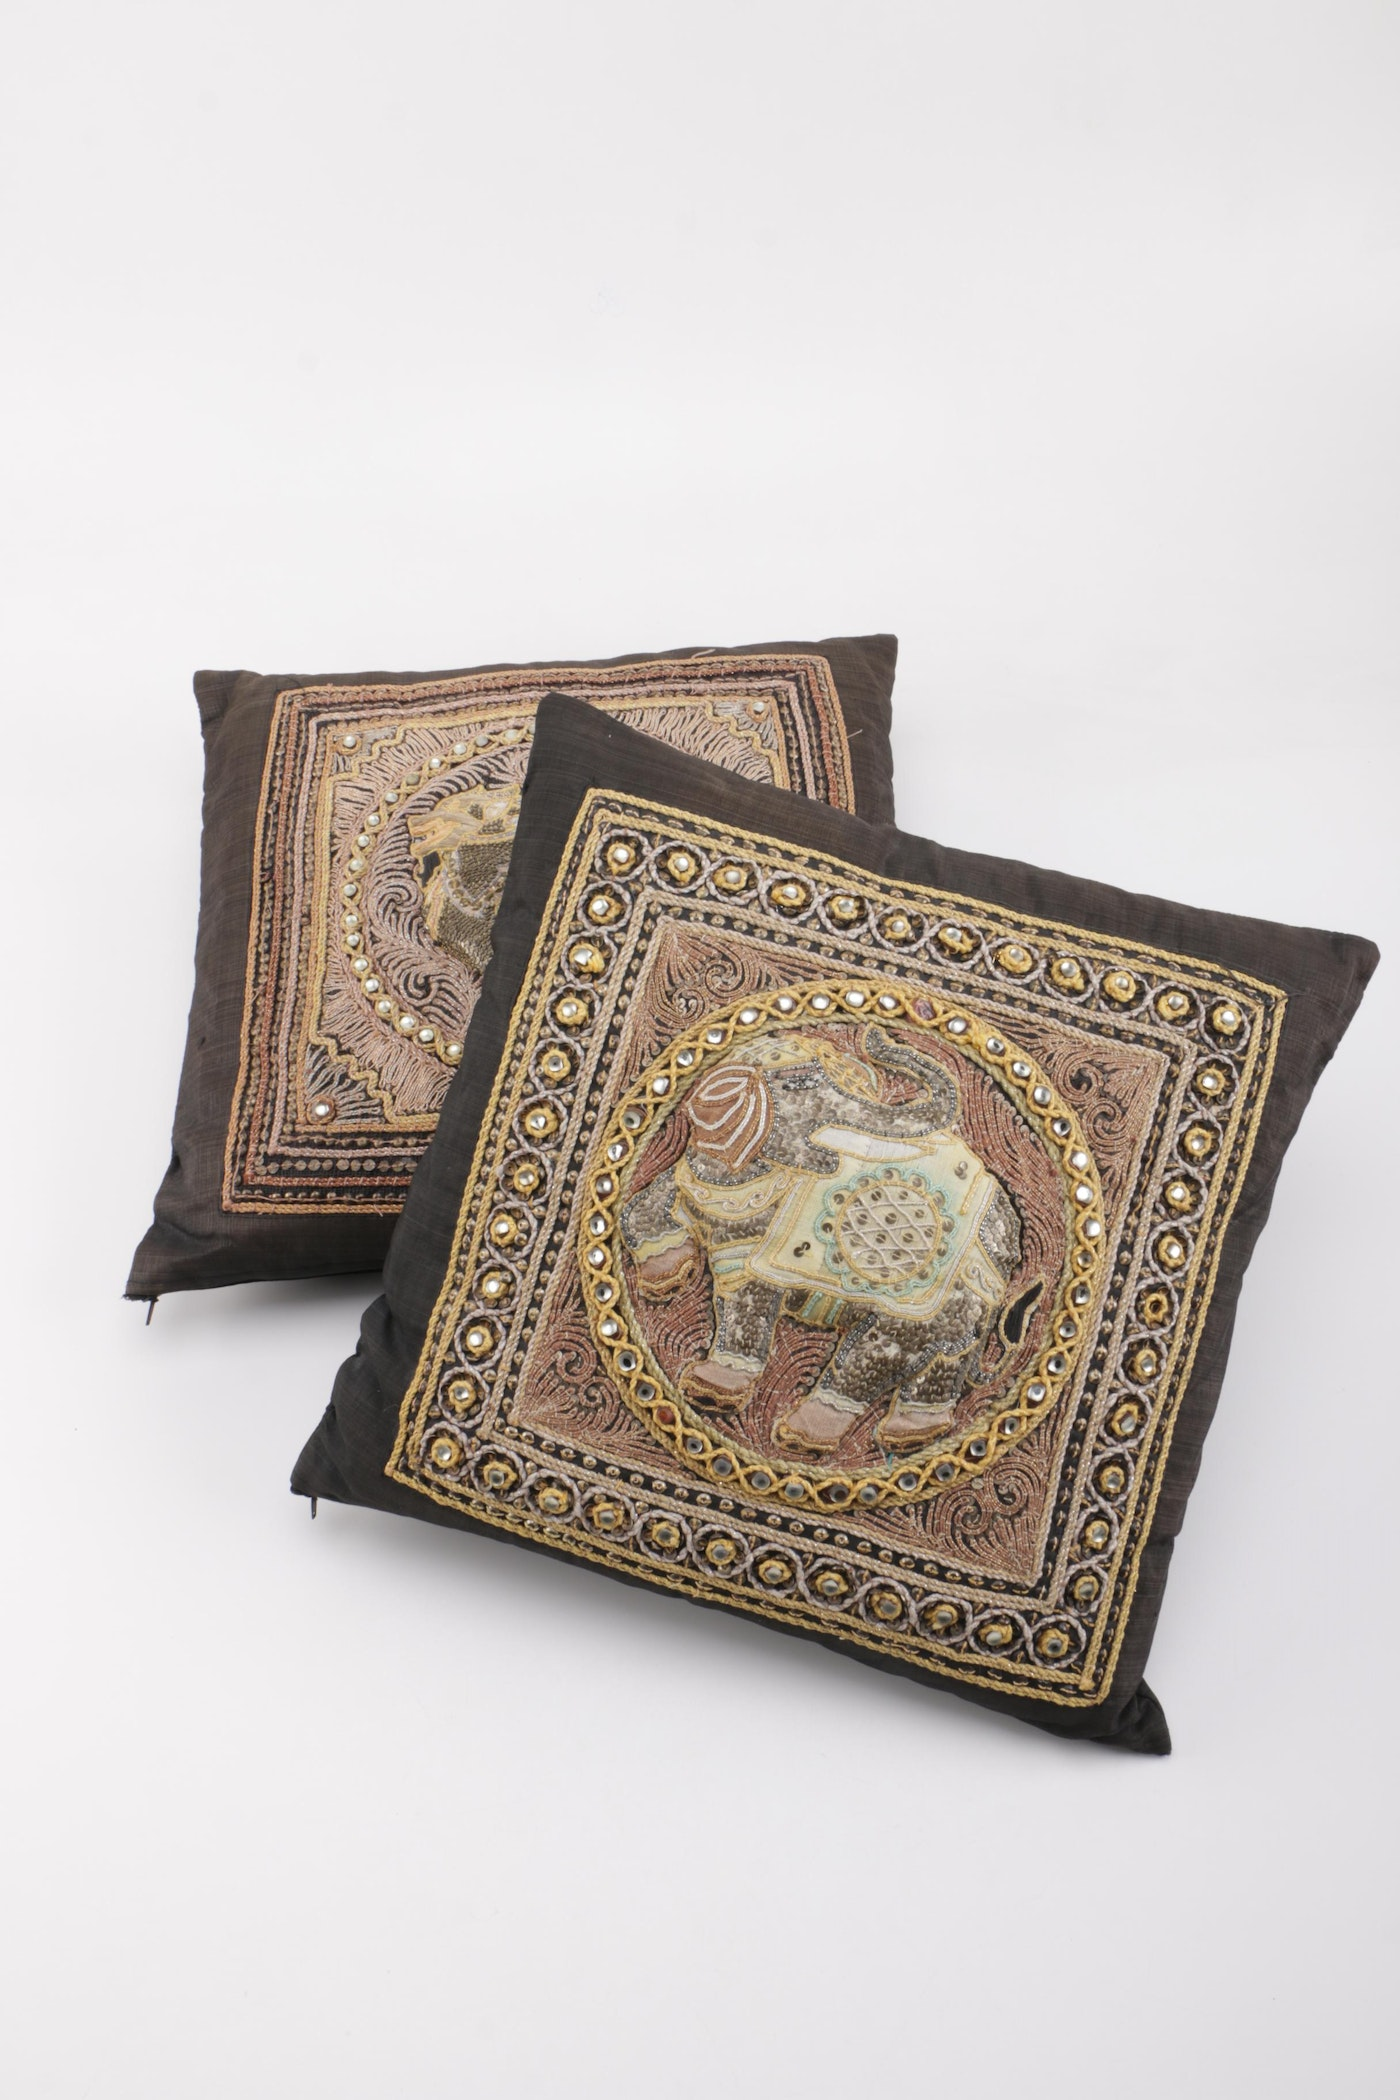 Sequin Elephant Throw Pillow : Pair of Kalaga Style Sequin and Beaded Throw Pillows : EBTH